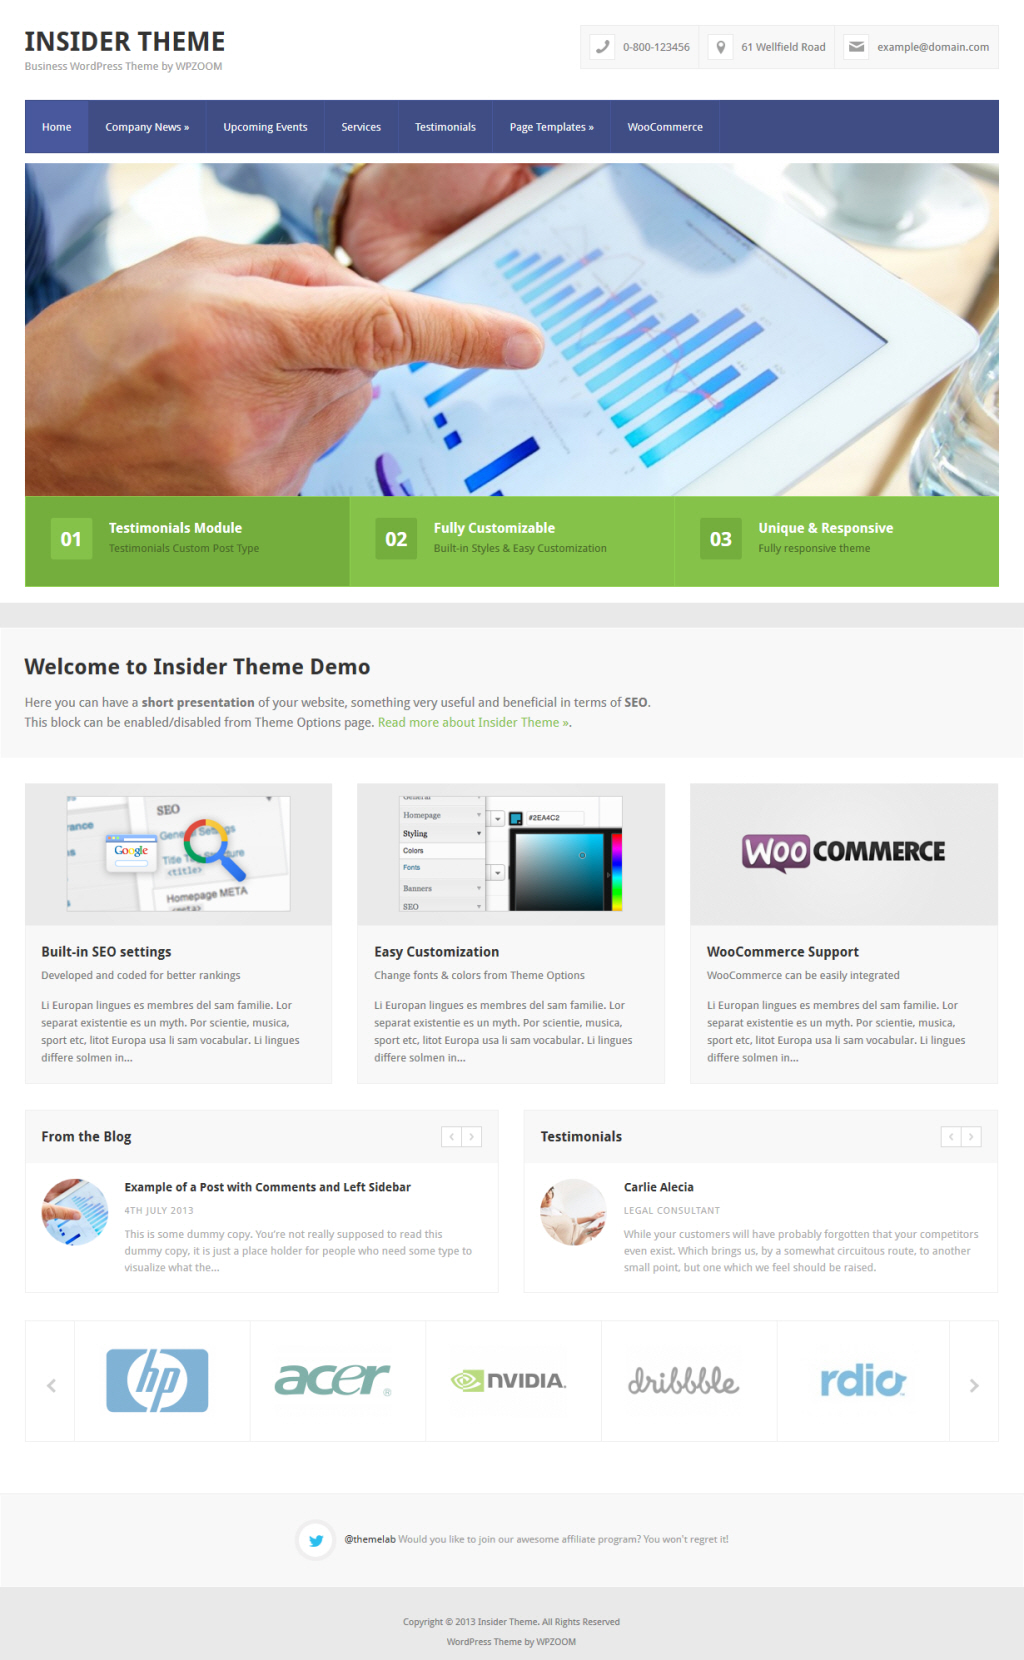 WPZOOM Insider Theme